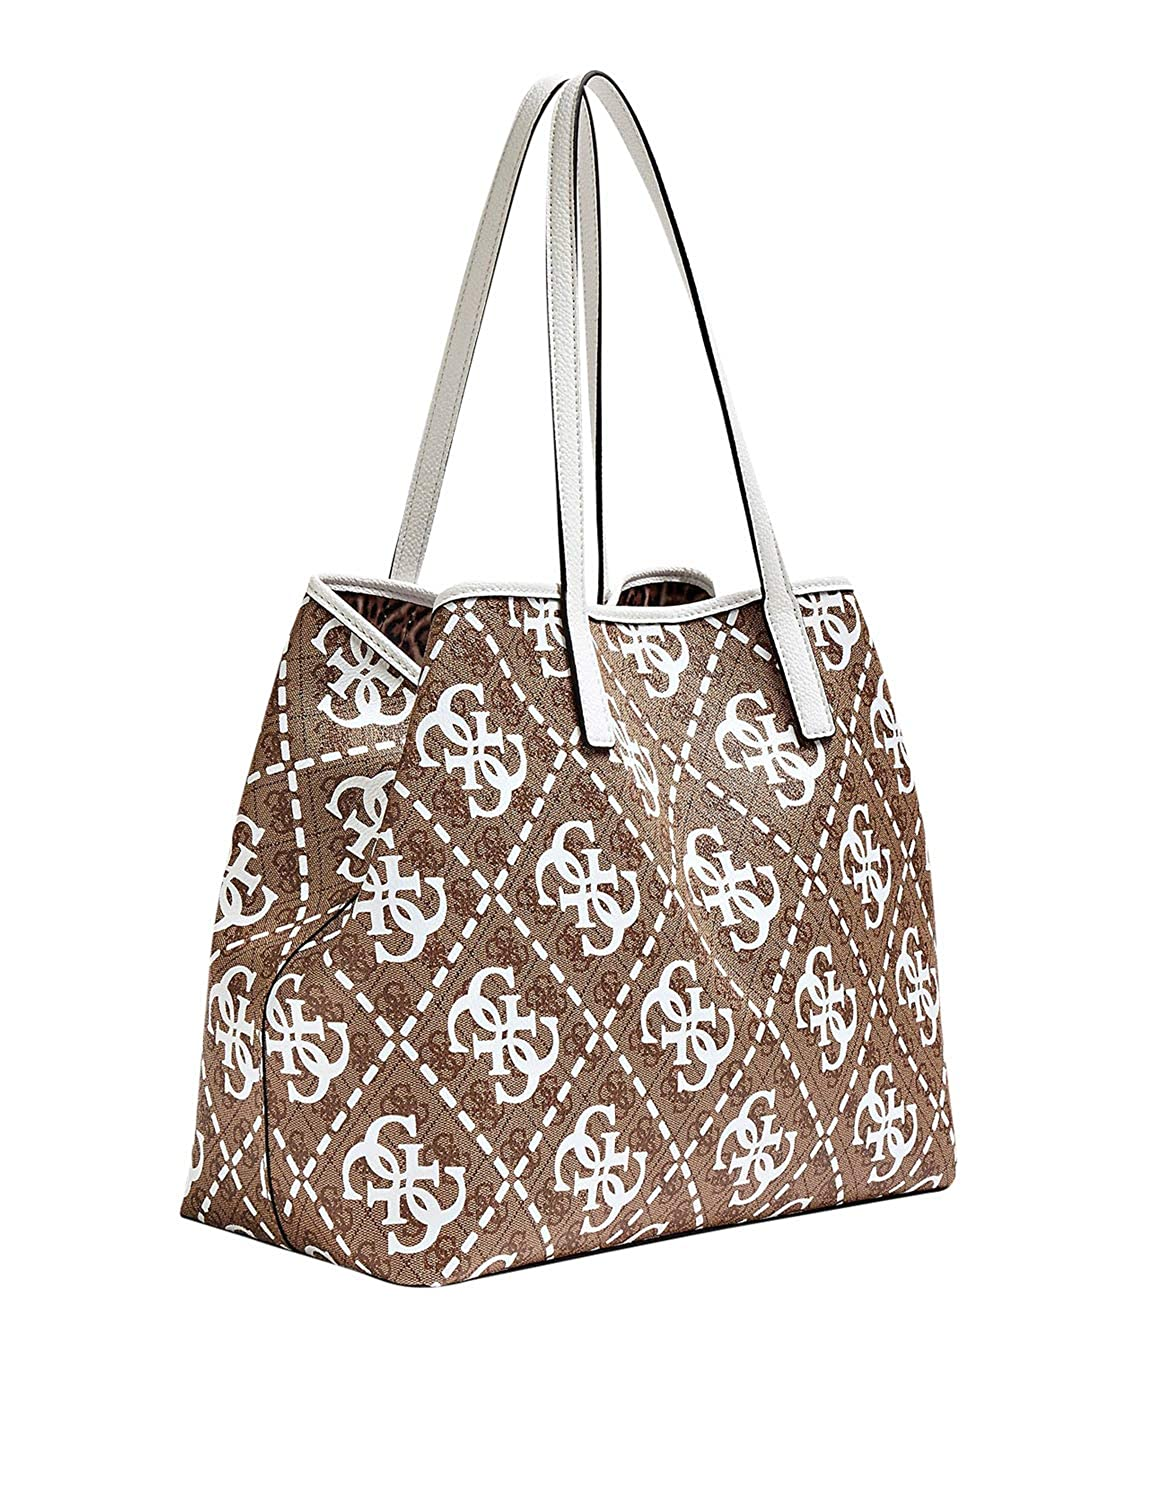 Guess vikky large tote amazon shoes bianco tote